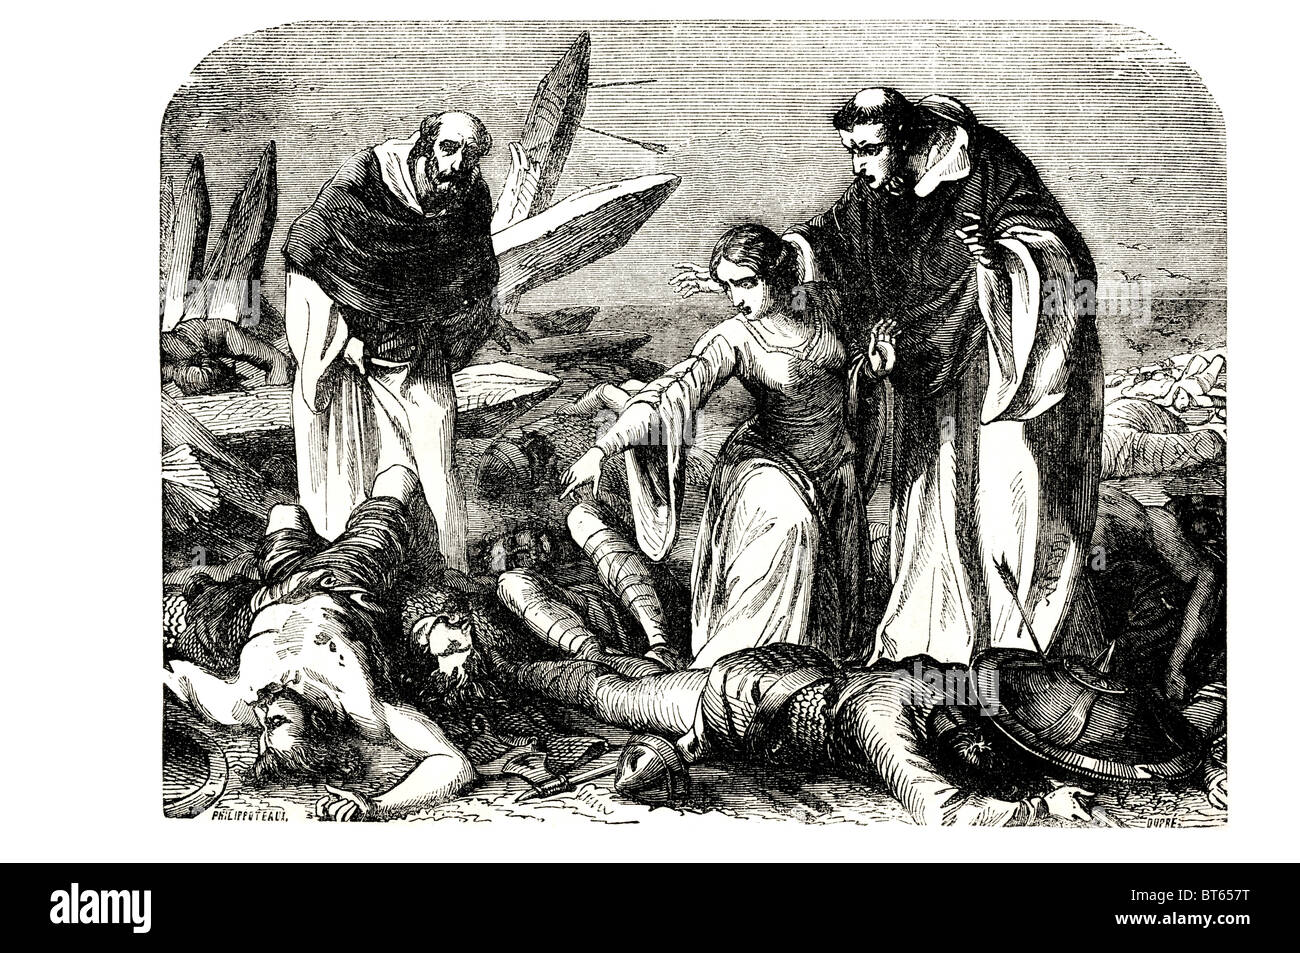 finding body of harold battle of agincourt English victory French army Hundred Years' War. The battle occurred - Stock Image